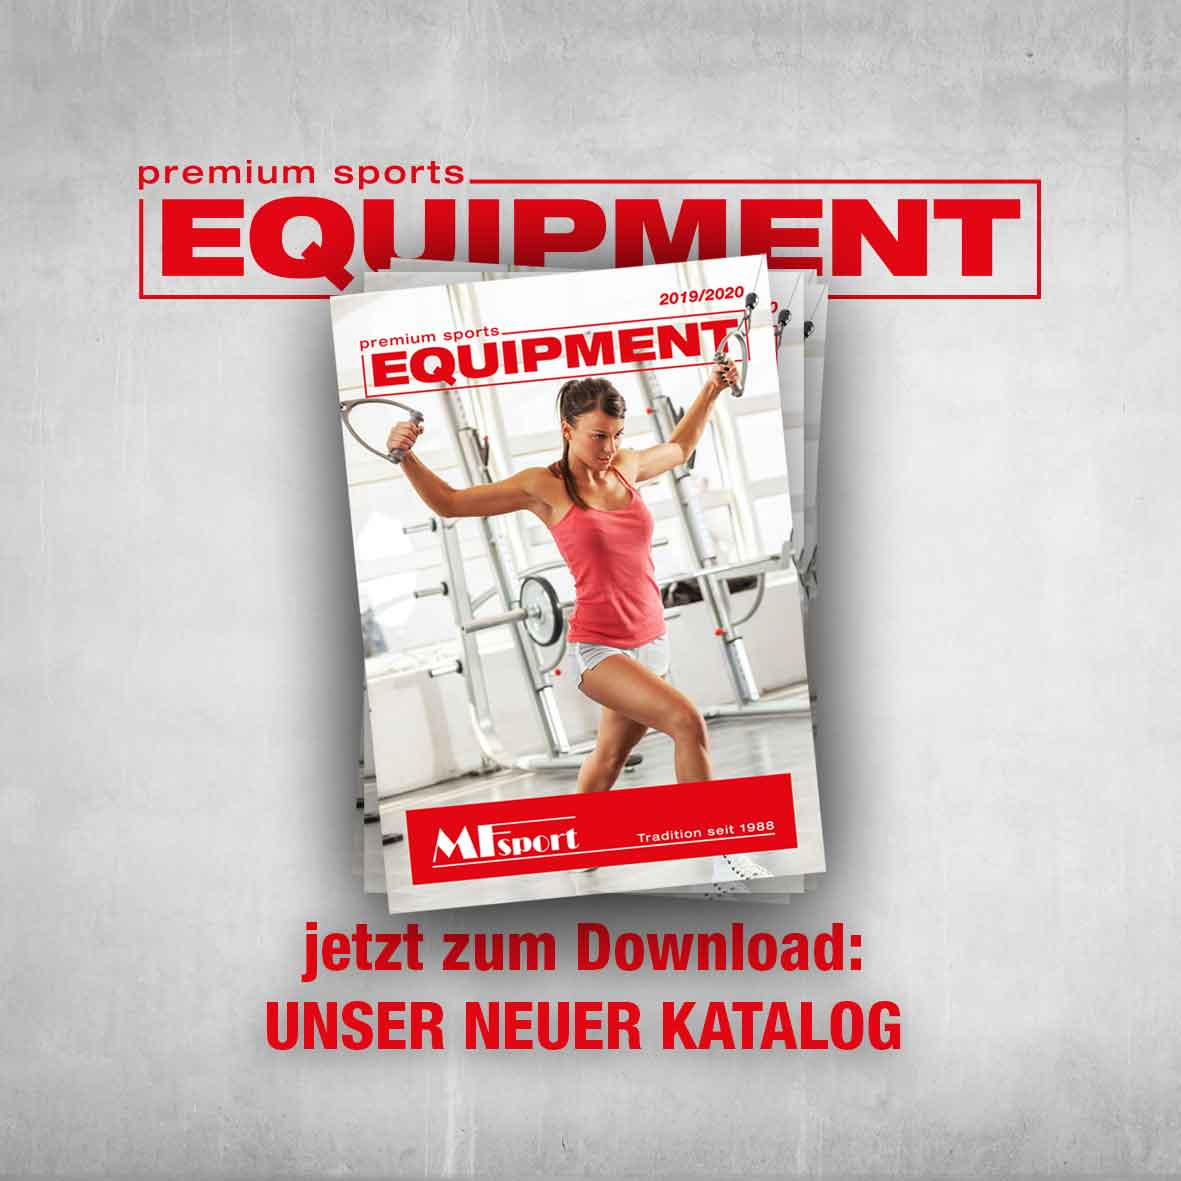 MFsport_banner_quad_equipment